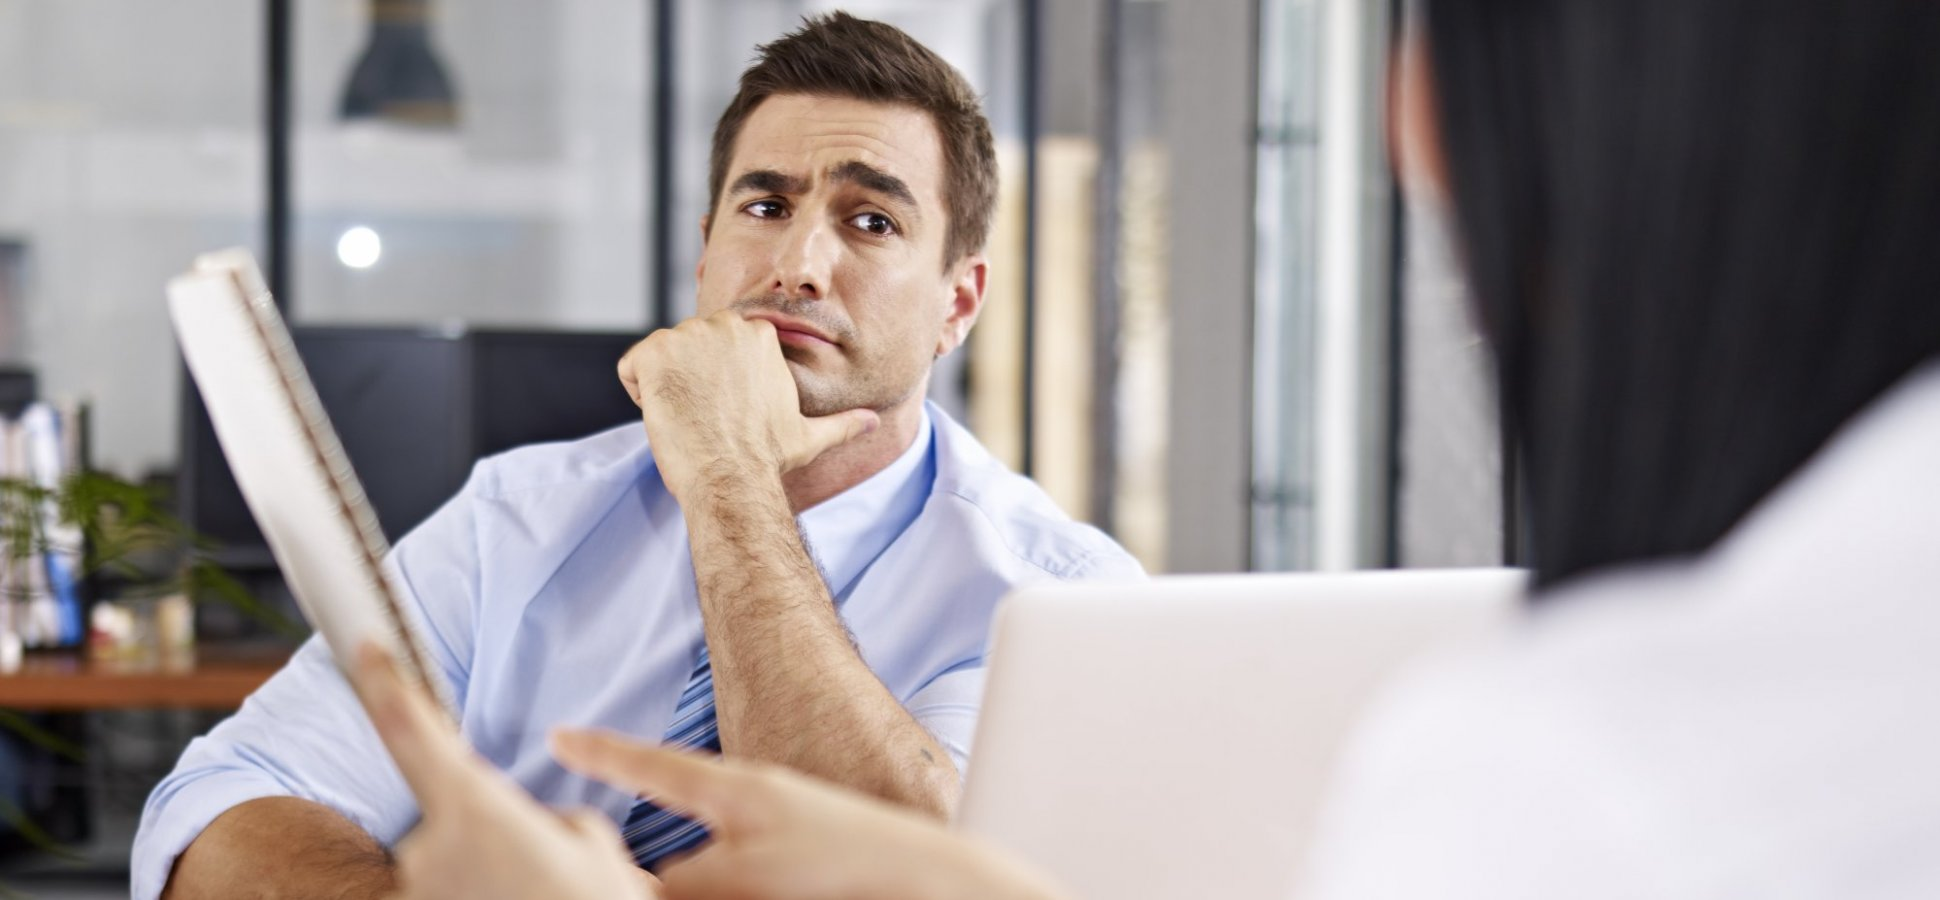 5 Blatant Illegal Interview Questions an Employer Should Stop Asking